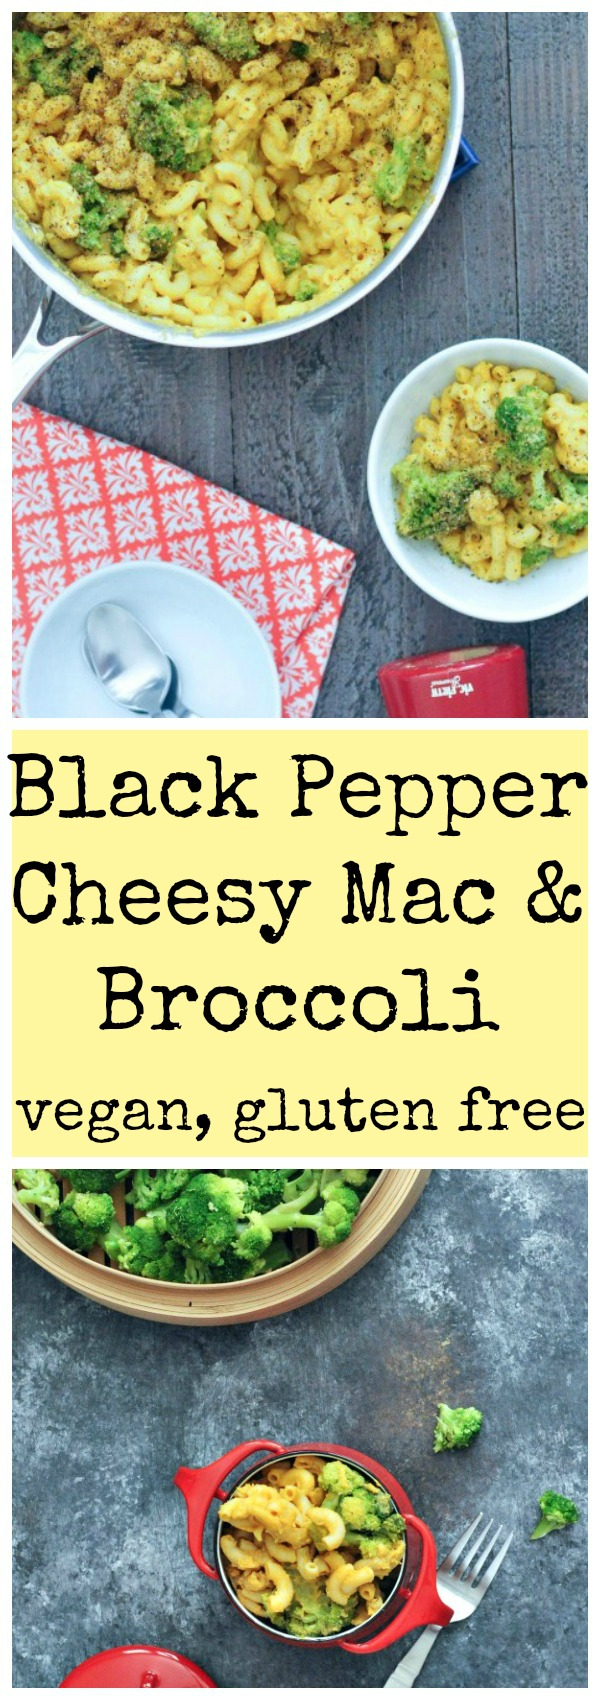 Black Pepper Cheesy Mac and Broccoli #Vegan @spabettie